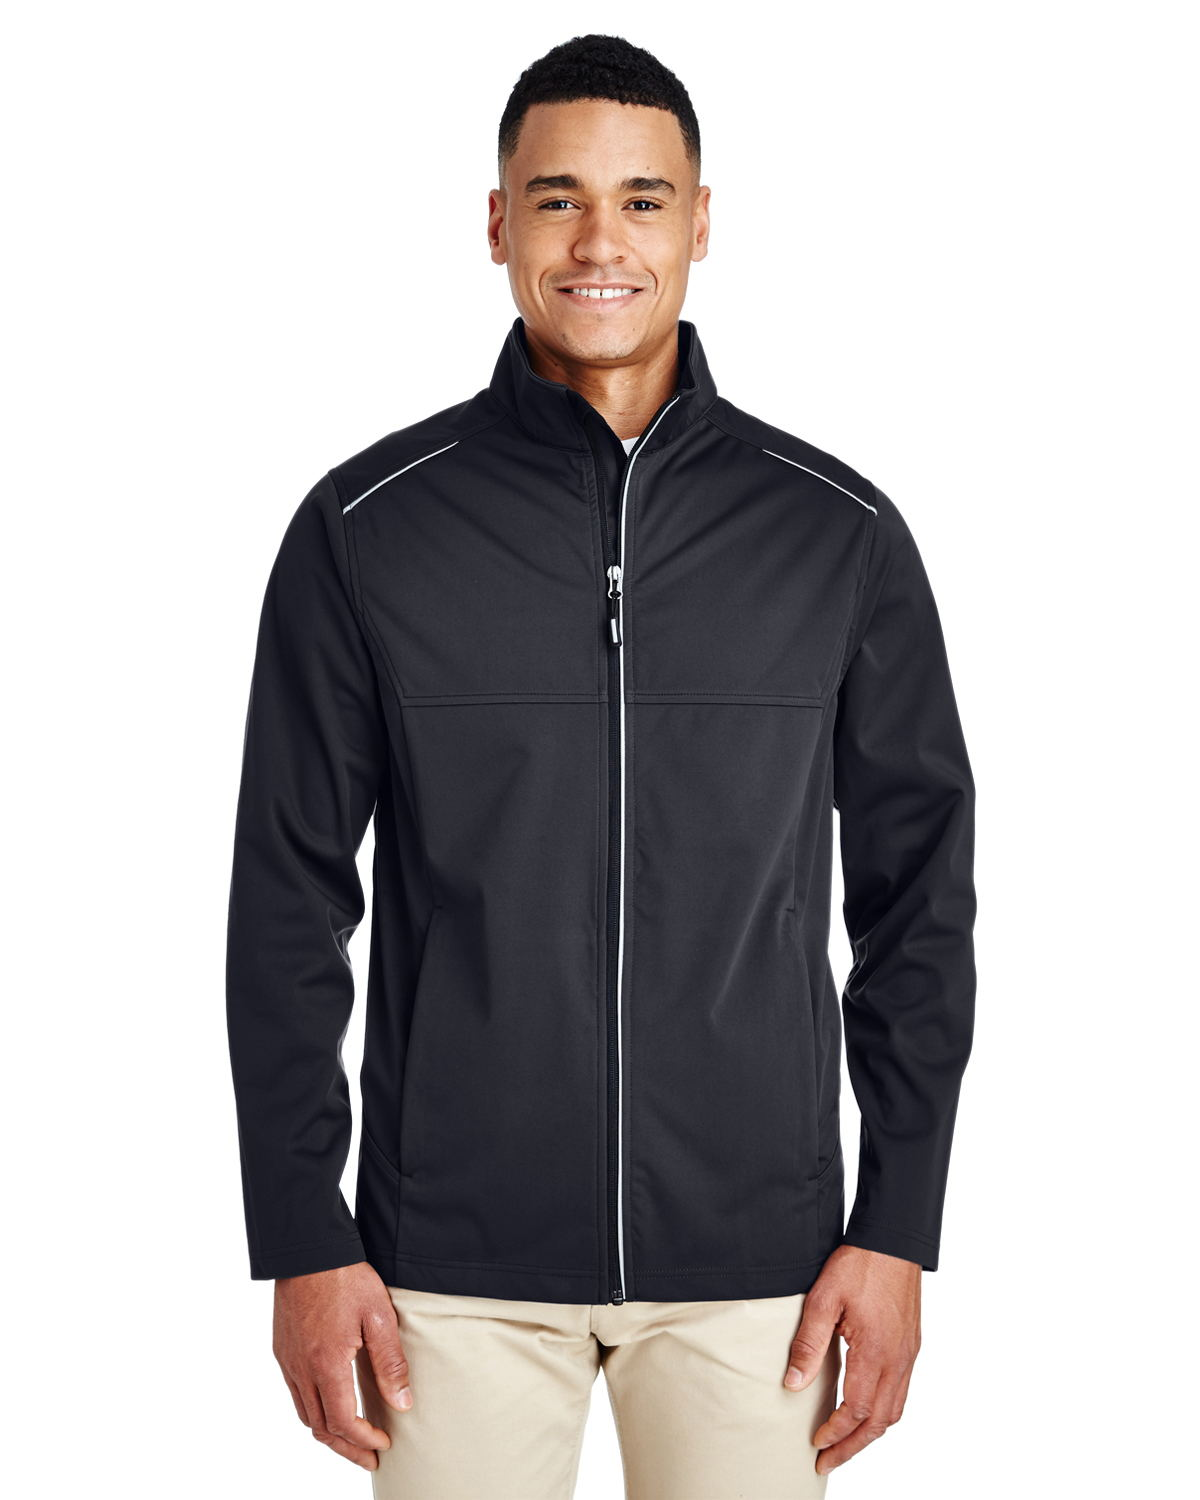 Ash City CE708 - Core 365 Men's Techno Lite 3-layer ...